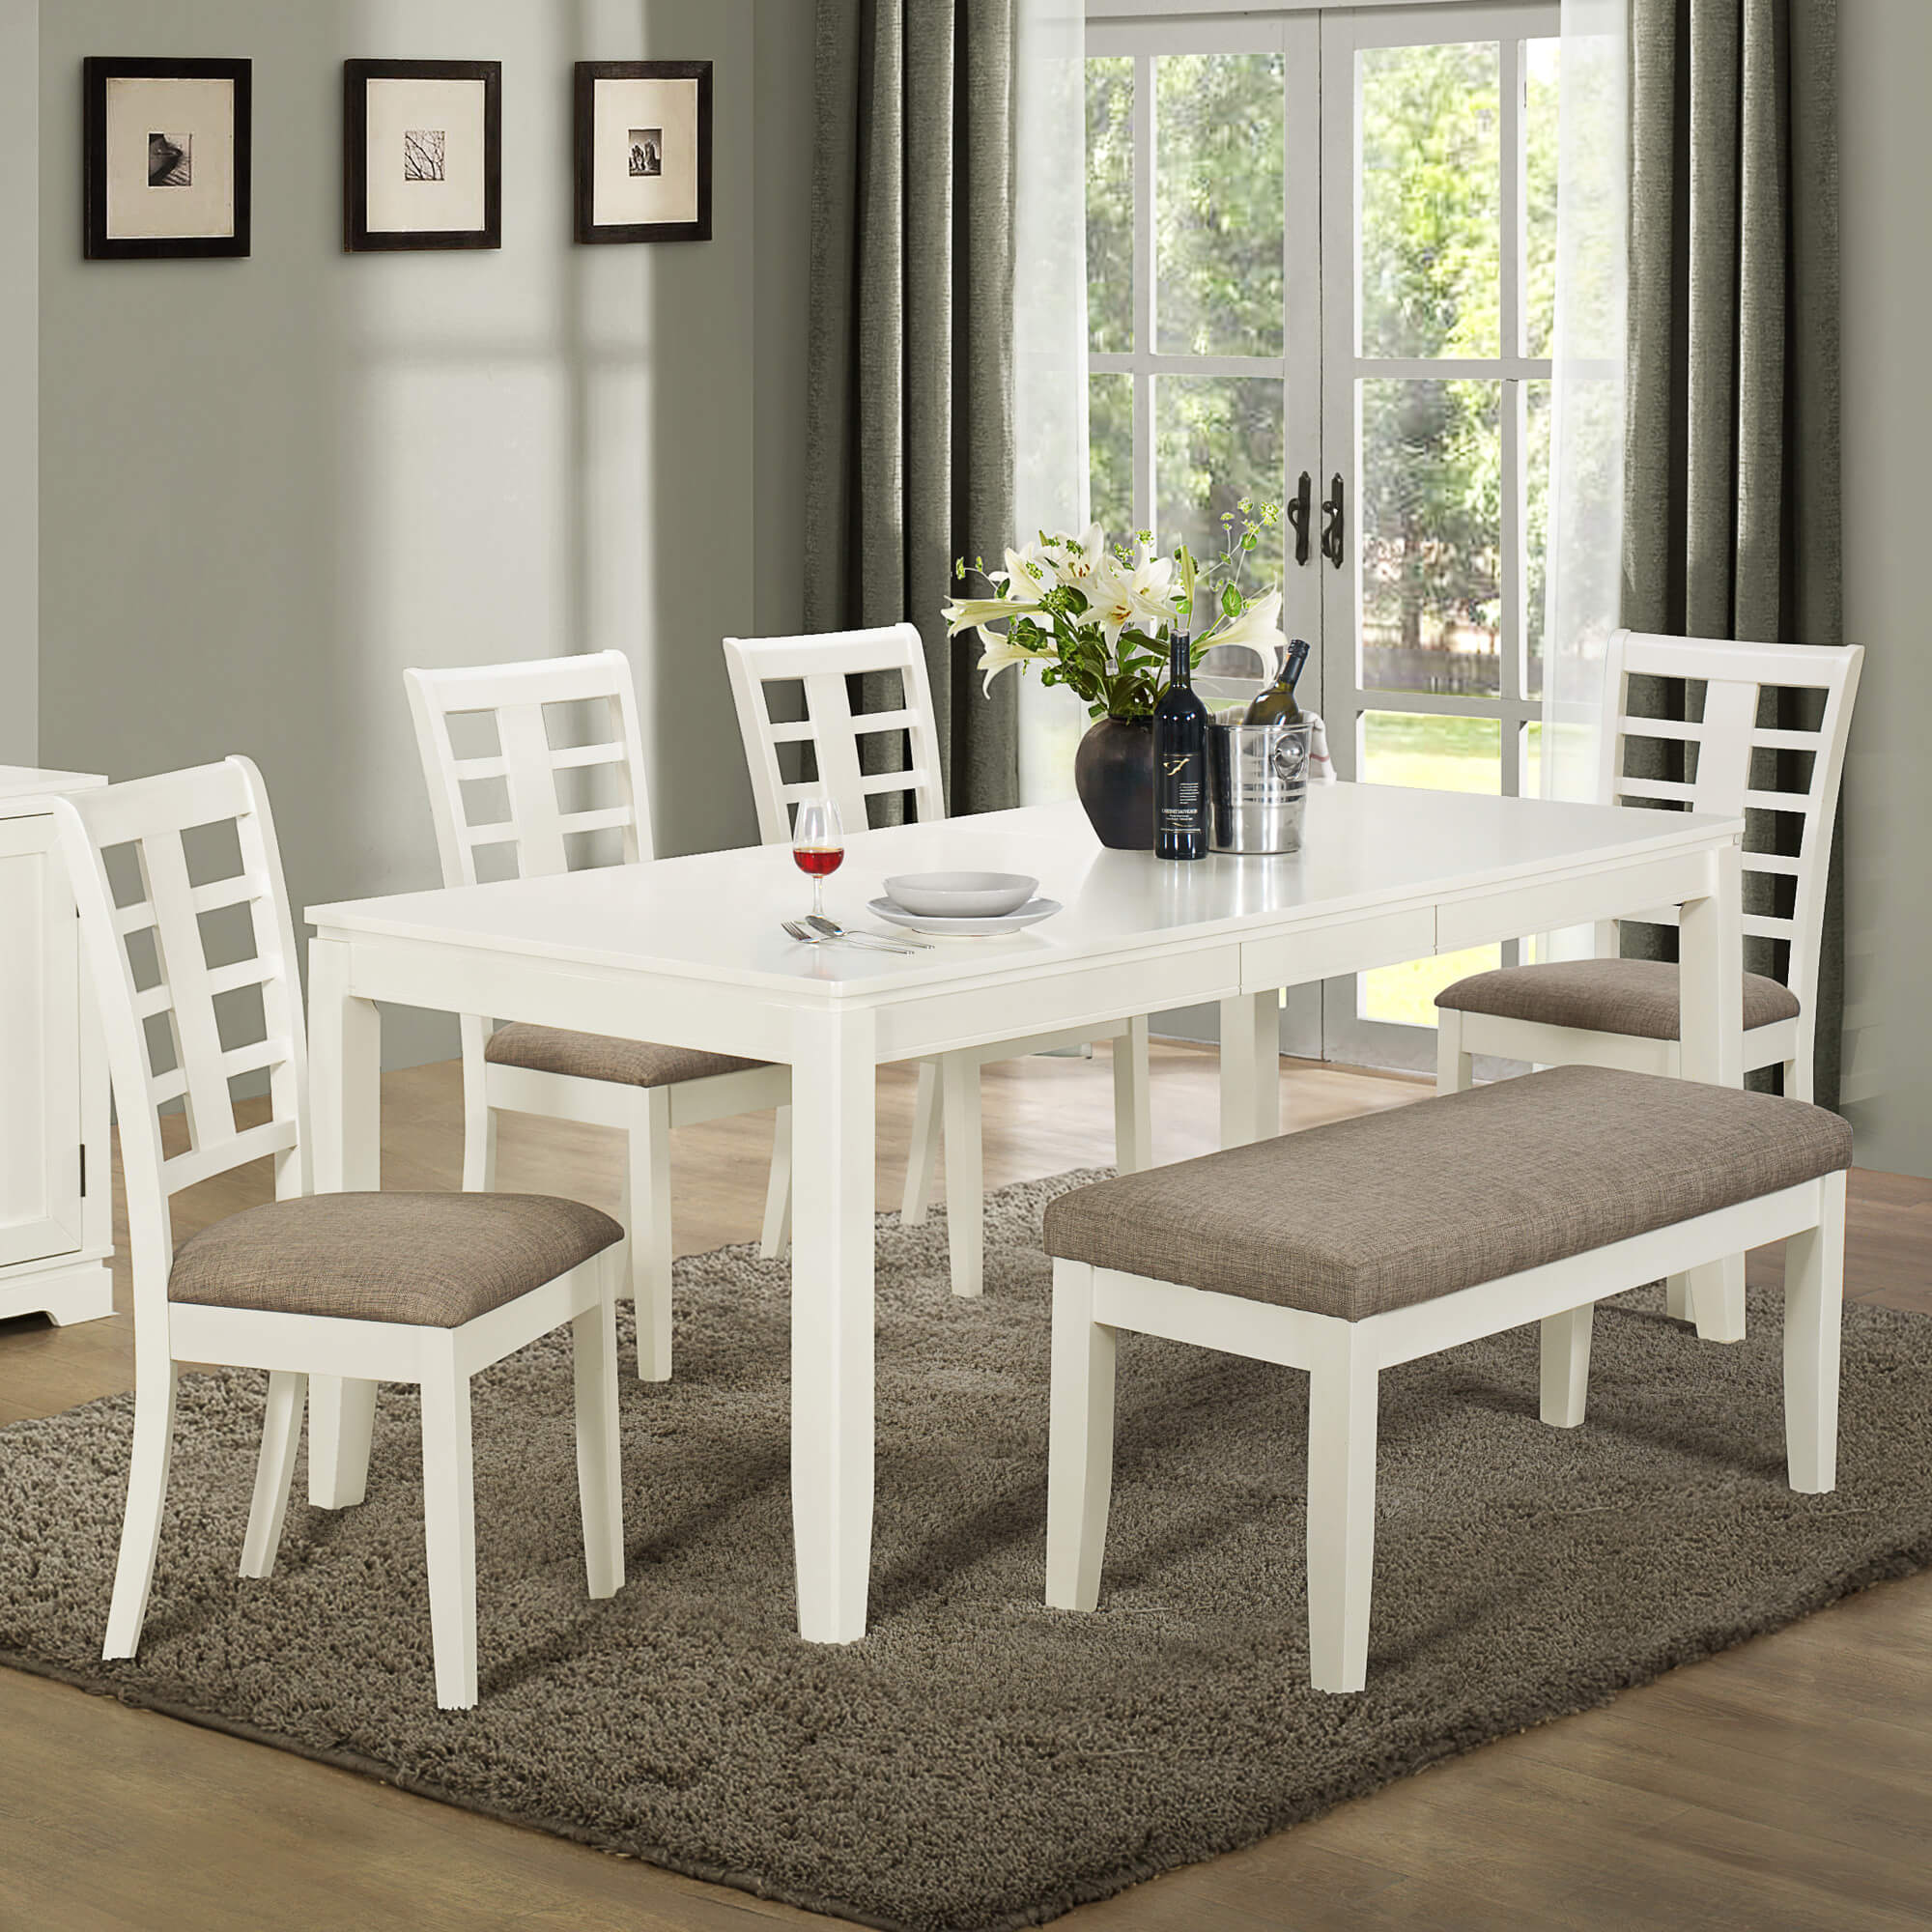 dining room sets bench seating solid wood kitchen tables Built with solid wood and MDF board this white and grey dining set with bench